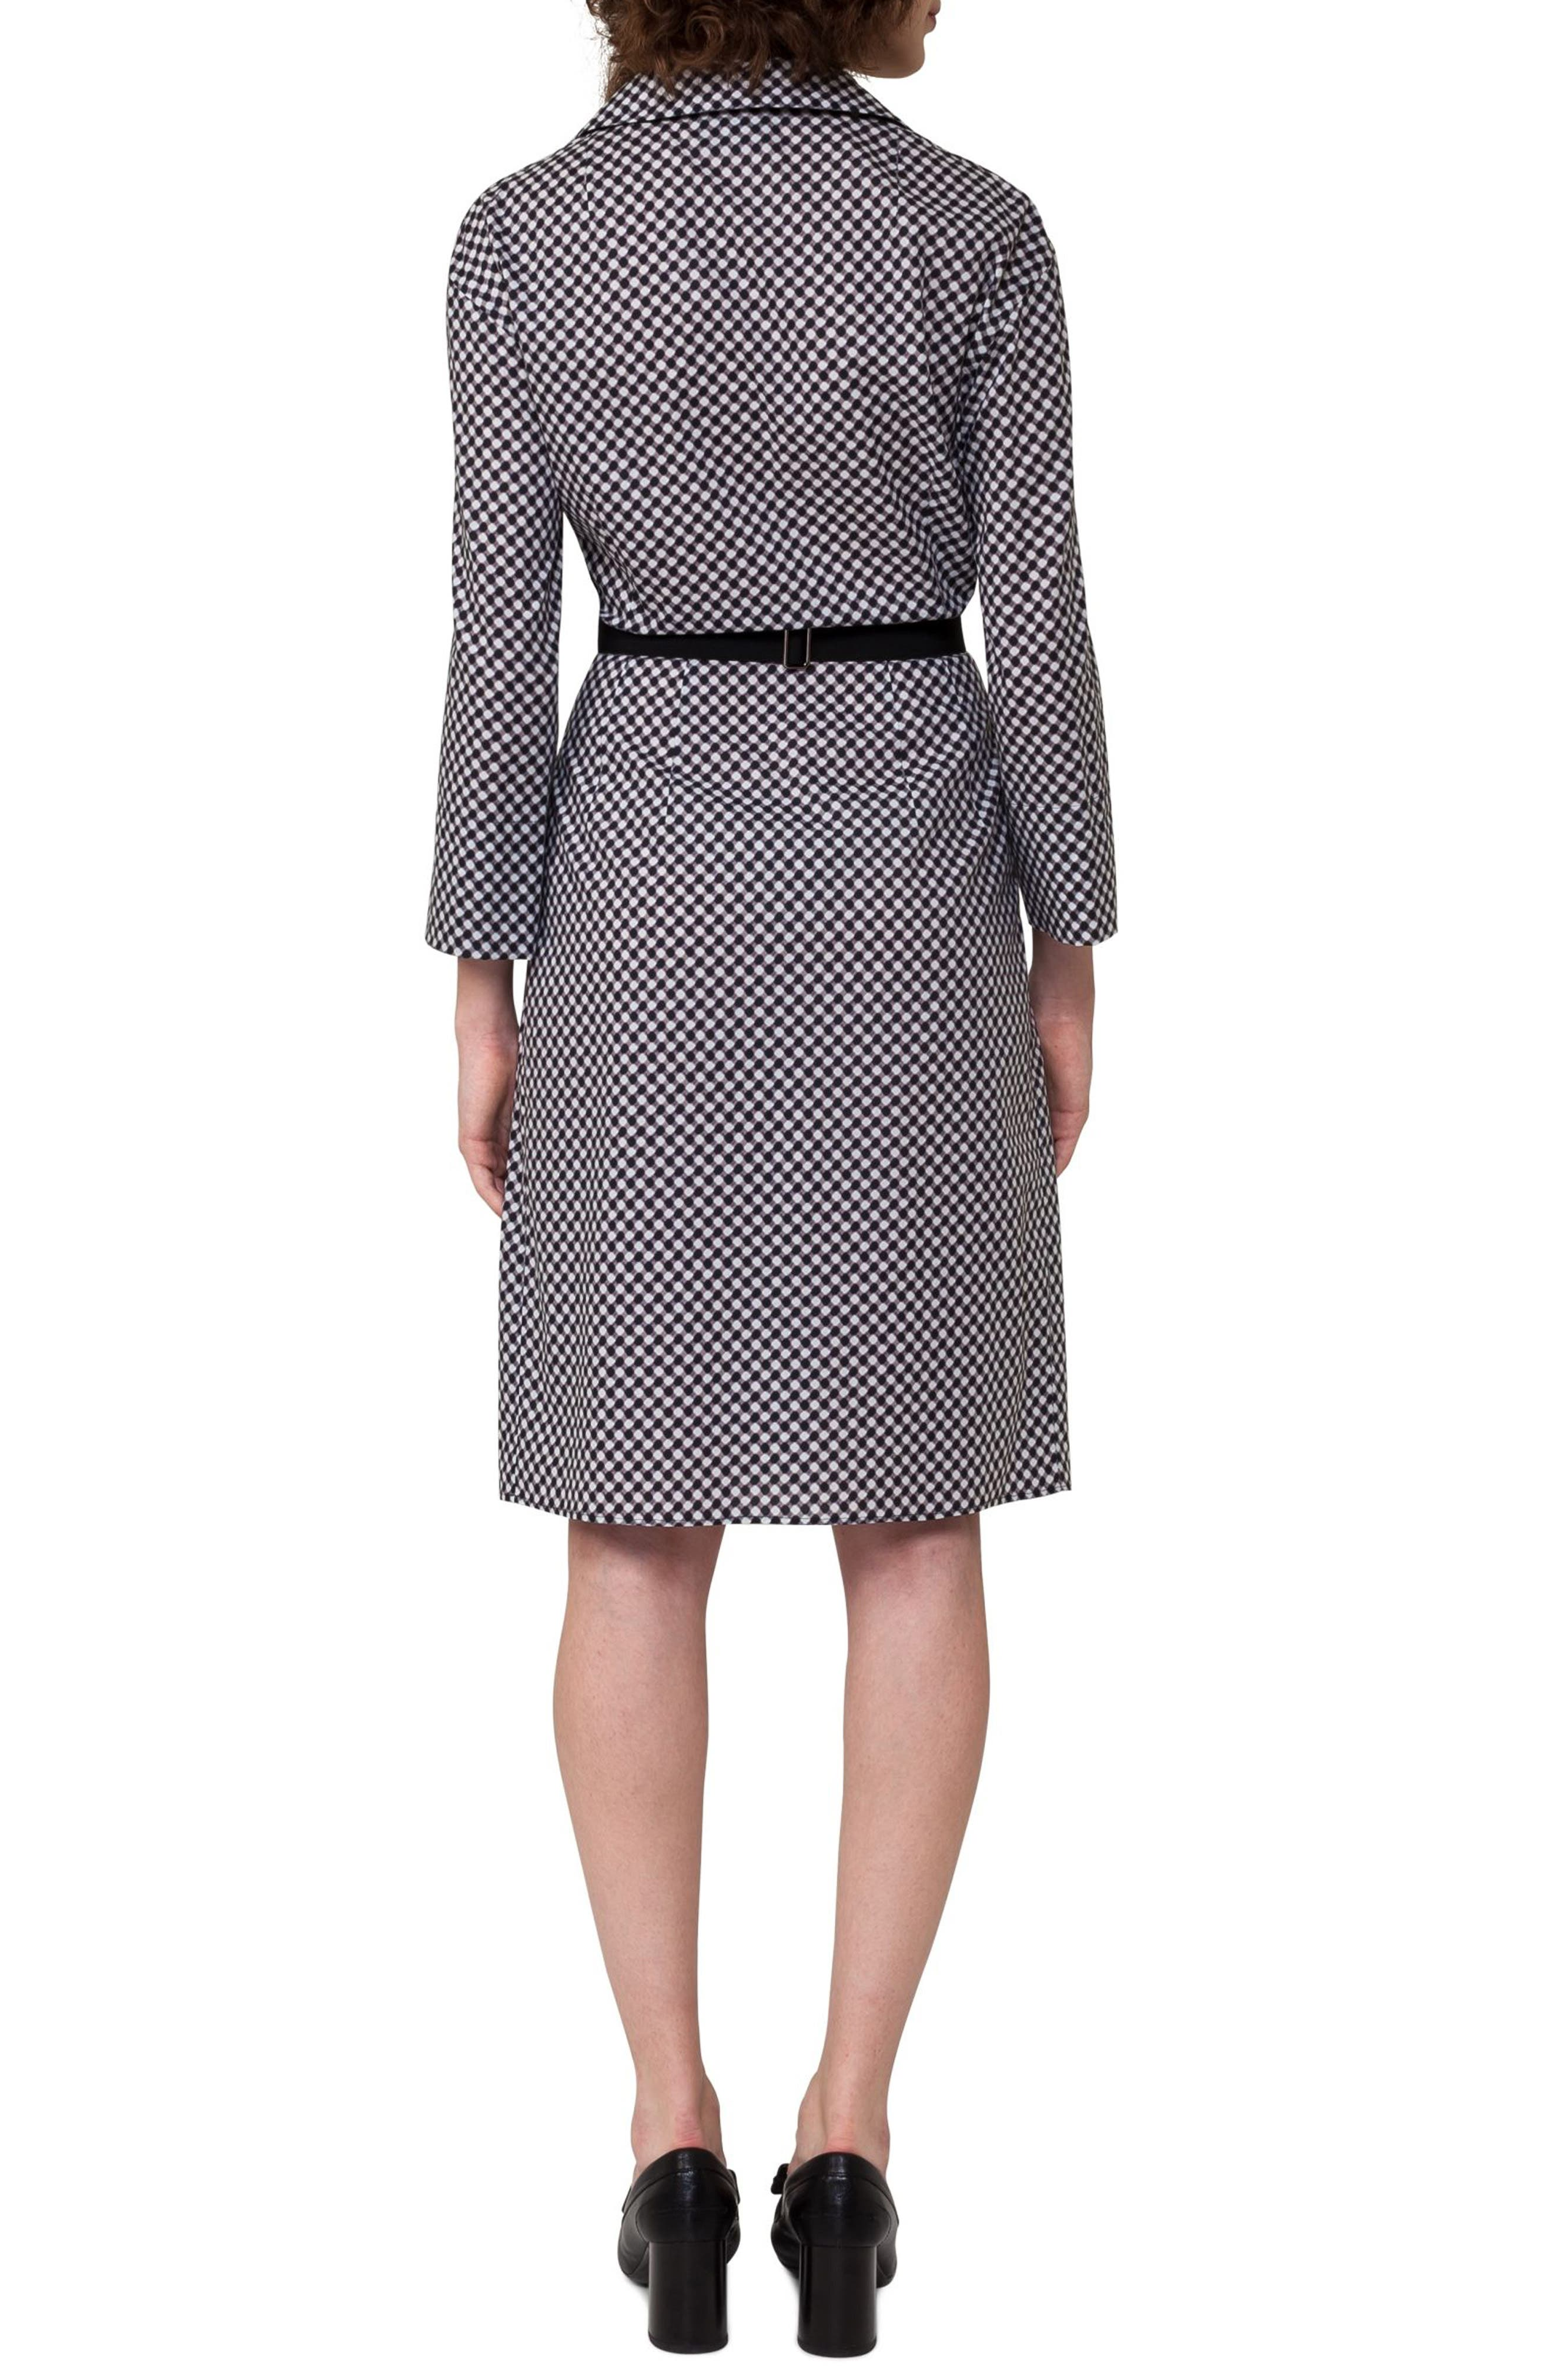 Belted Check Cotton Dress,                             Alternate thumbnail 2, color,                             019